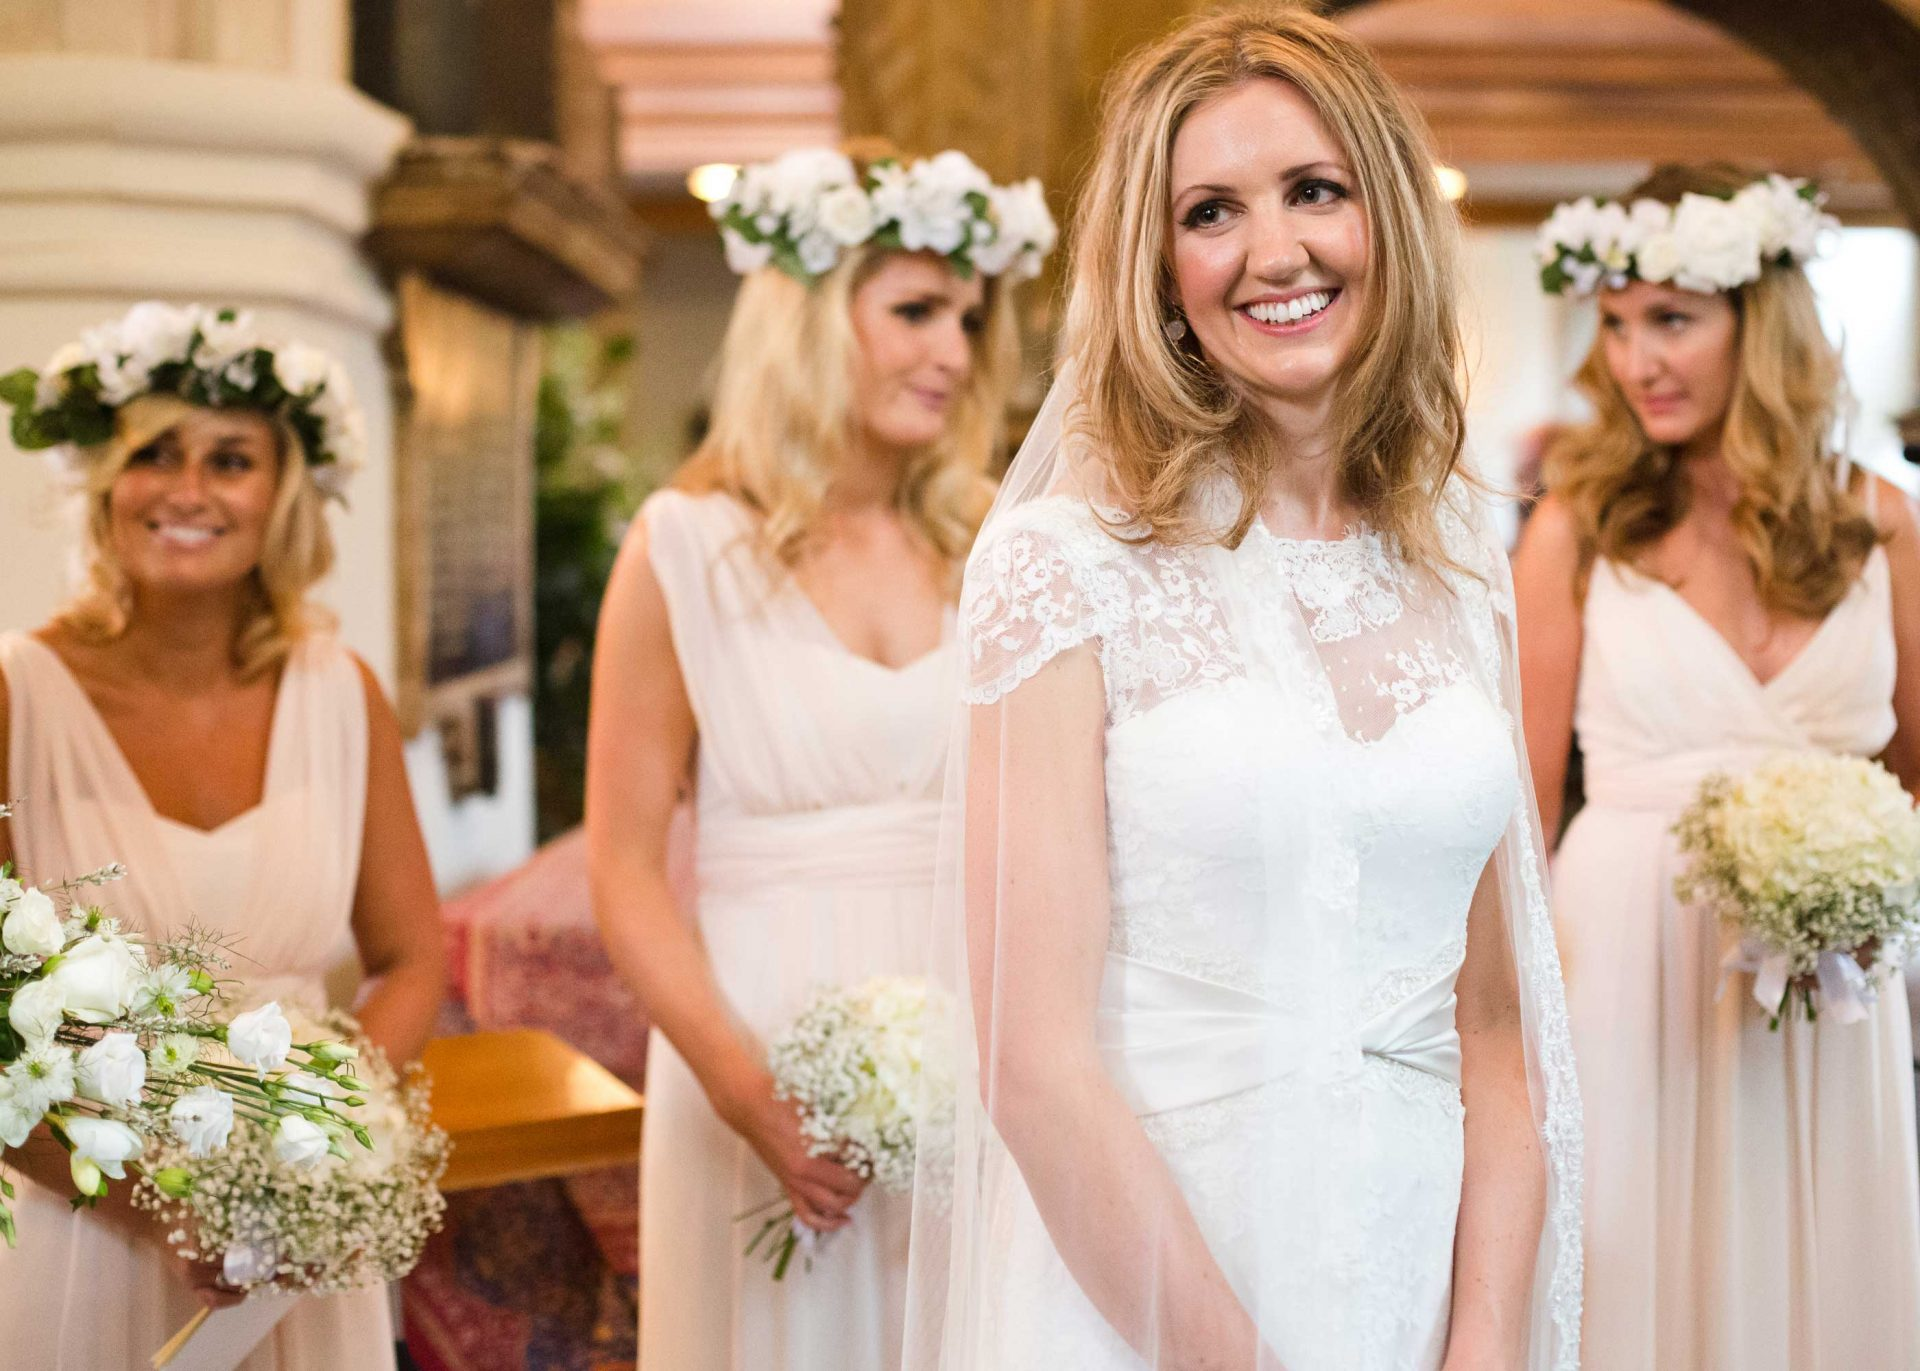 Bride and bridesmaids in flower crowns